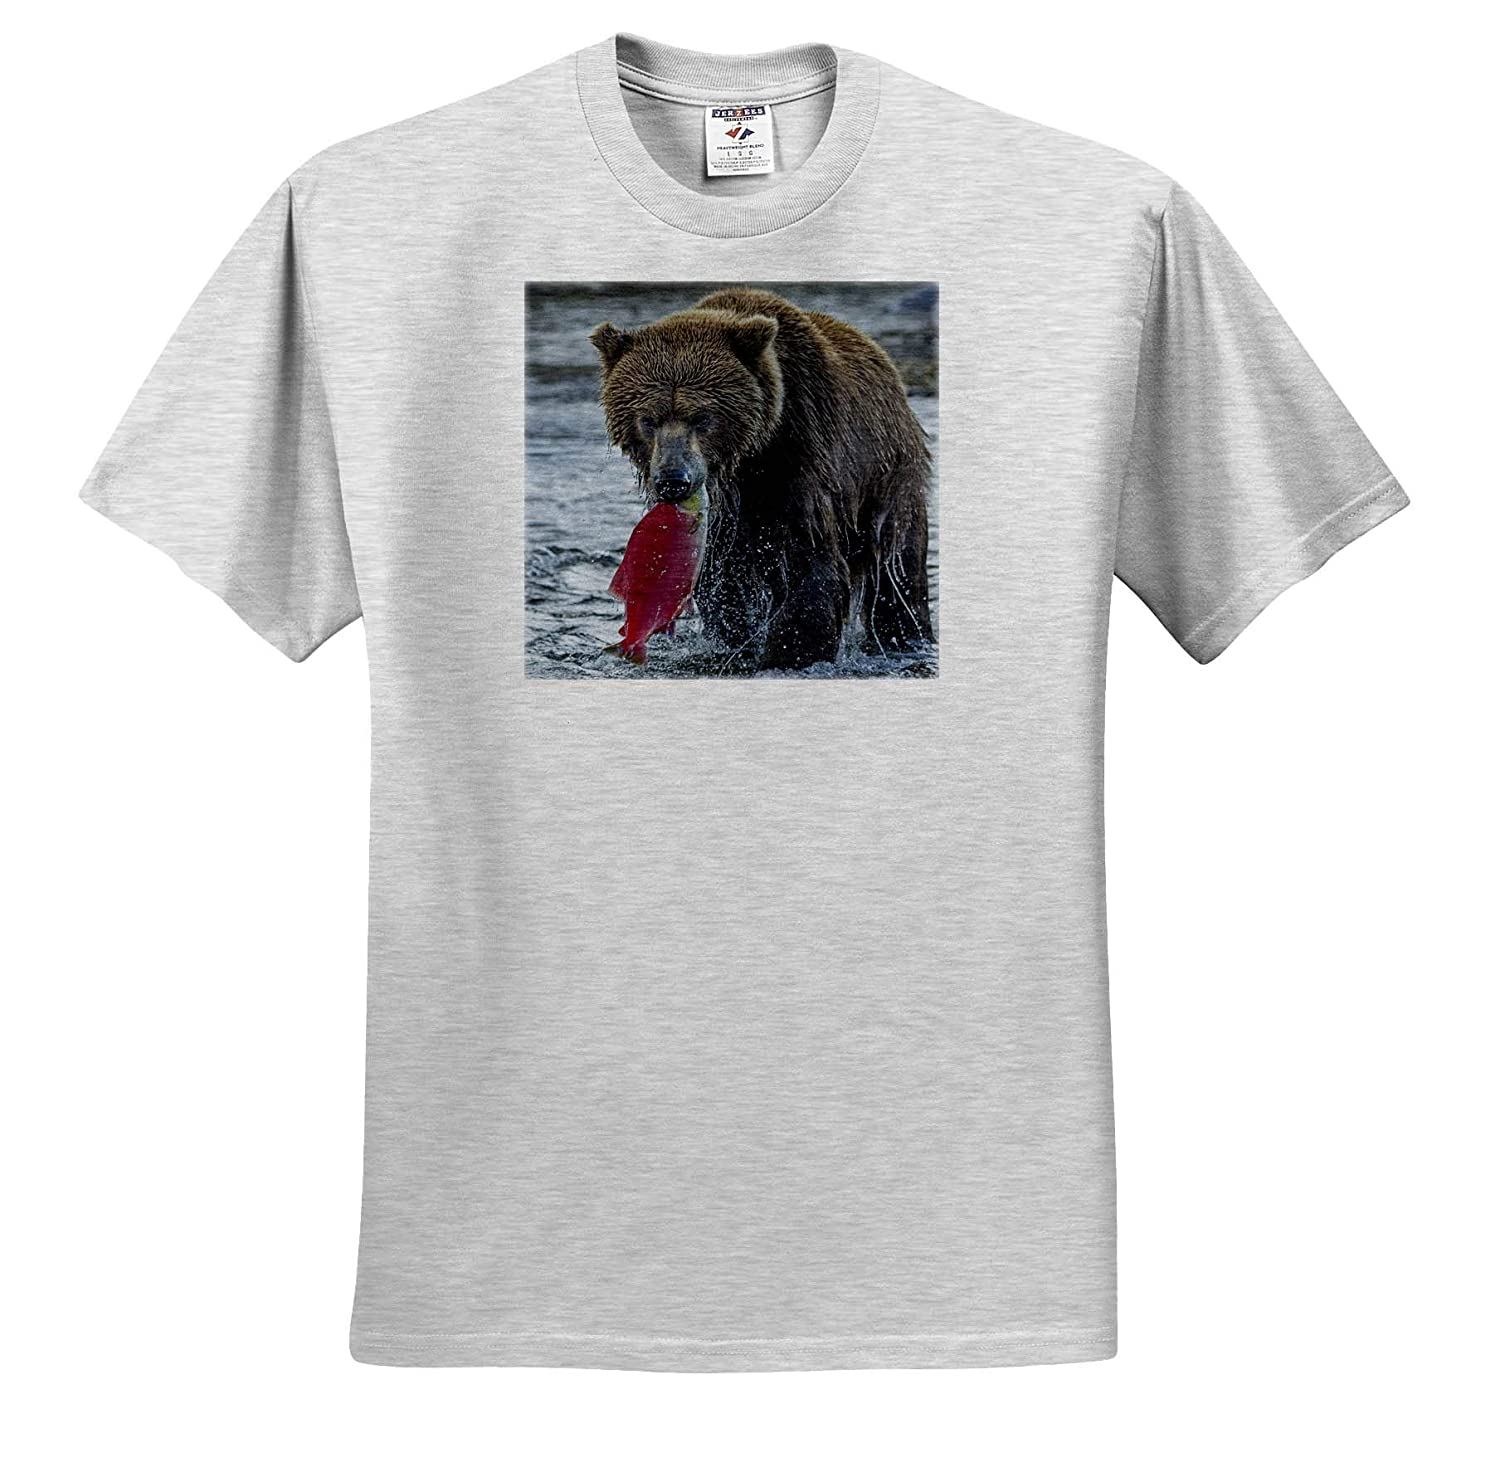 Alaska Adult T-Shirt XL USA Bears ts/_314413 Brown Bear Fishing Katmai National Park 3dRose Danita Delimont